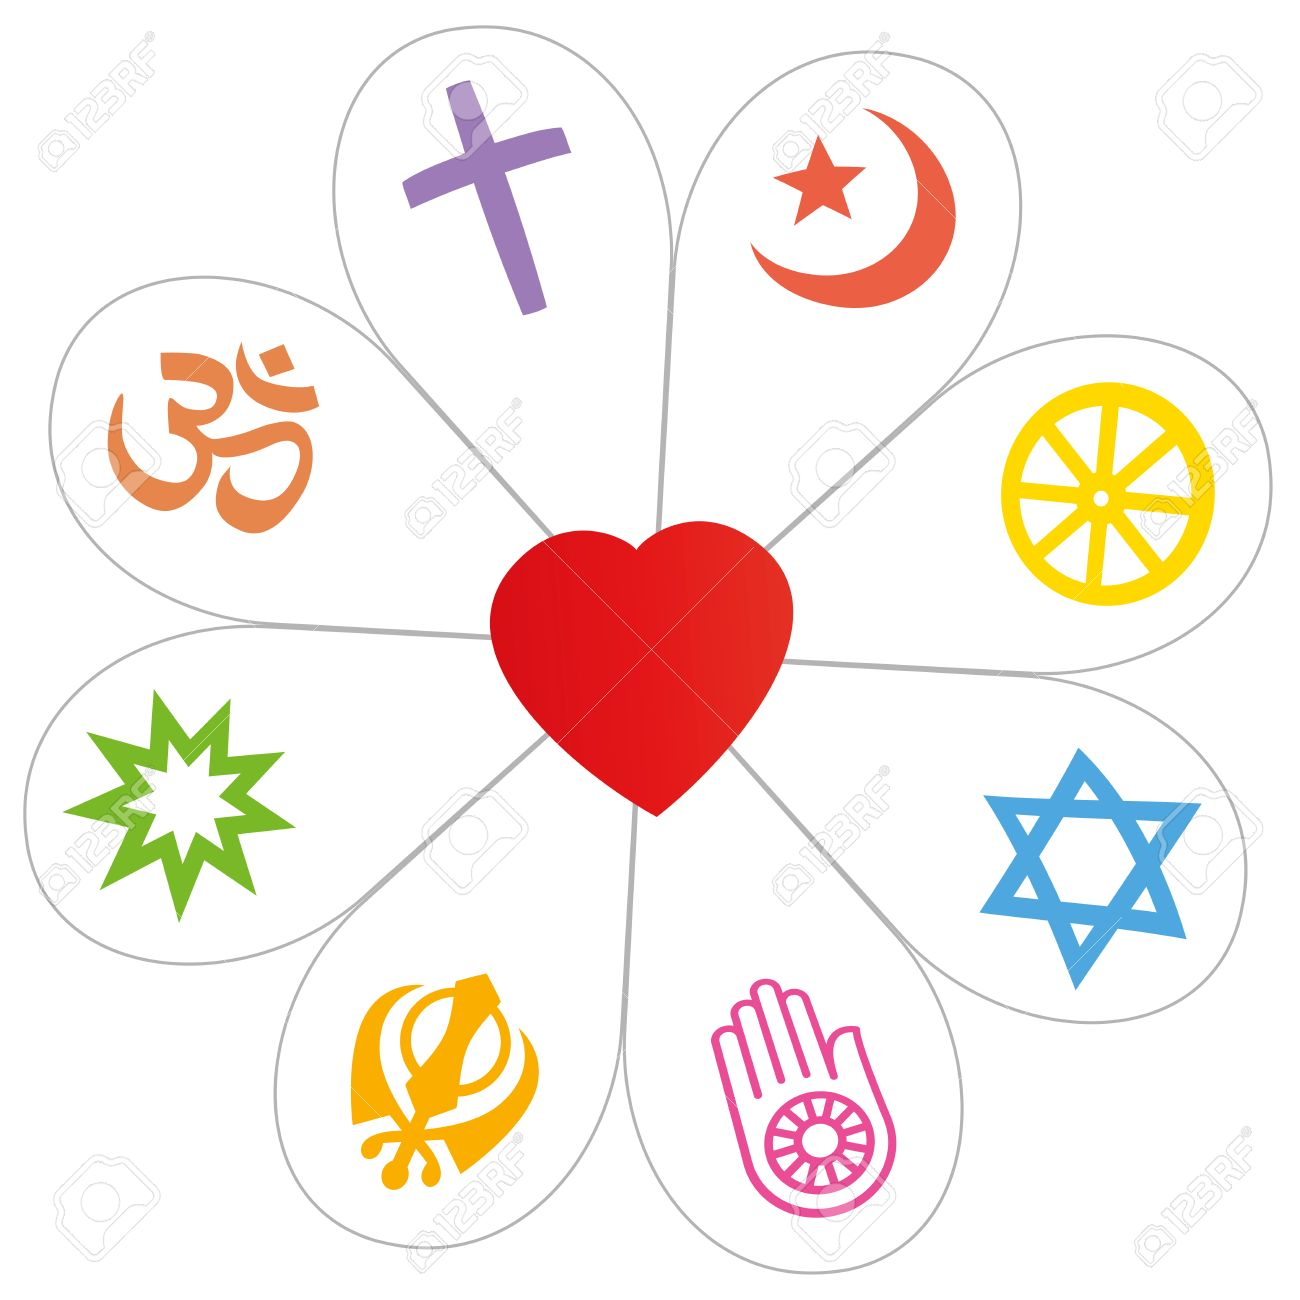 Religious Symbols Did Form A Flower With A Heart As A Symbol For